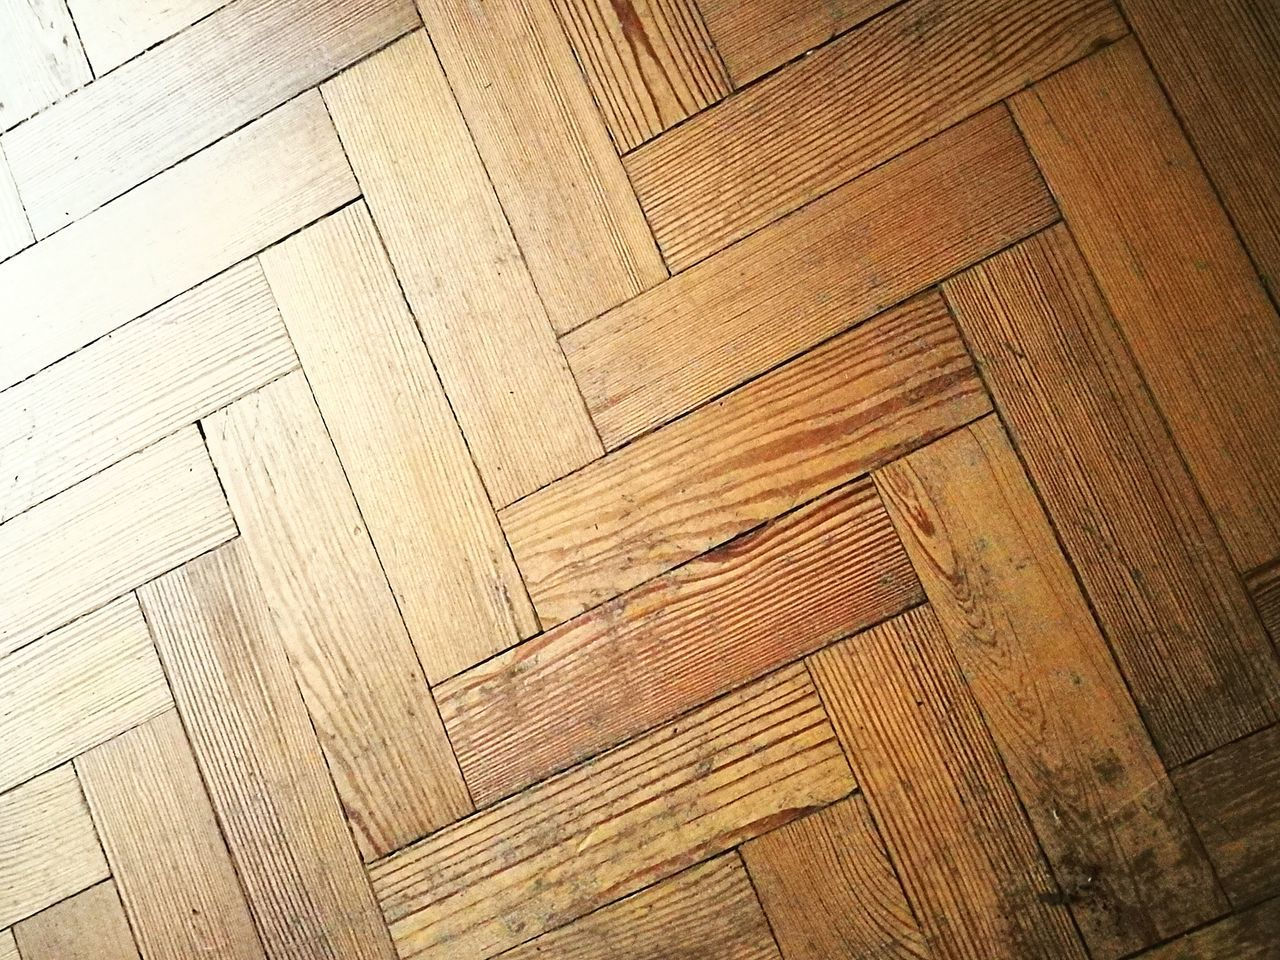 backgrounds, hardwood floor, wood - material, pattern, brown, wood grain, textured, hardwood, striped, flooring, wood paneling, timber, plank, surface level, rough, lumber industry, knotted wood, full frame, close-up, no people, nature, indoors, day